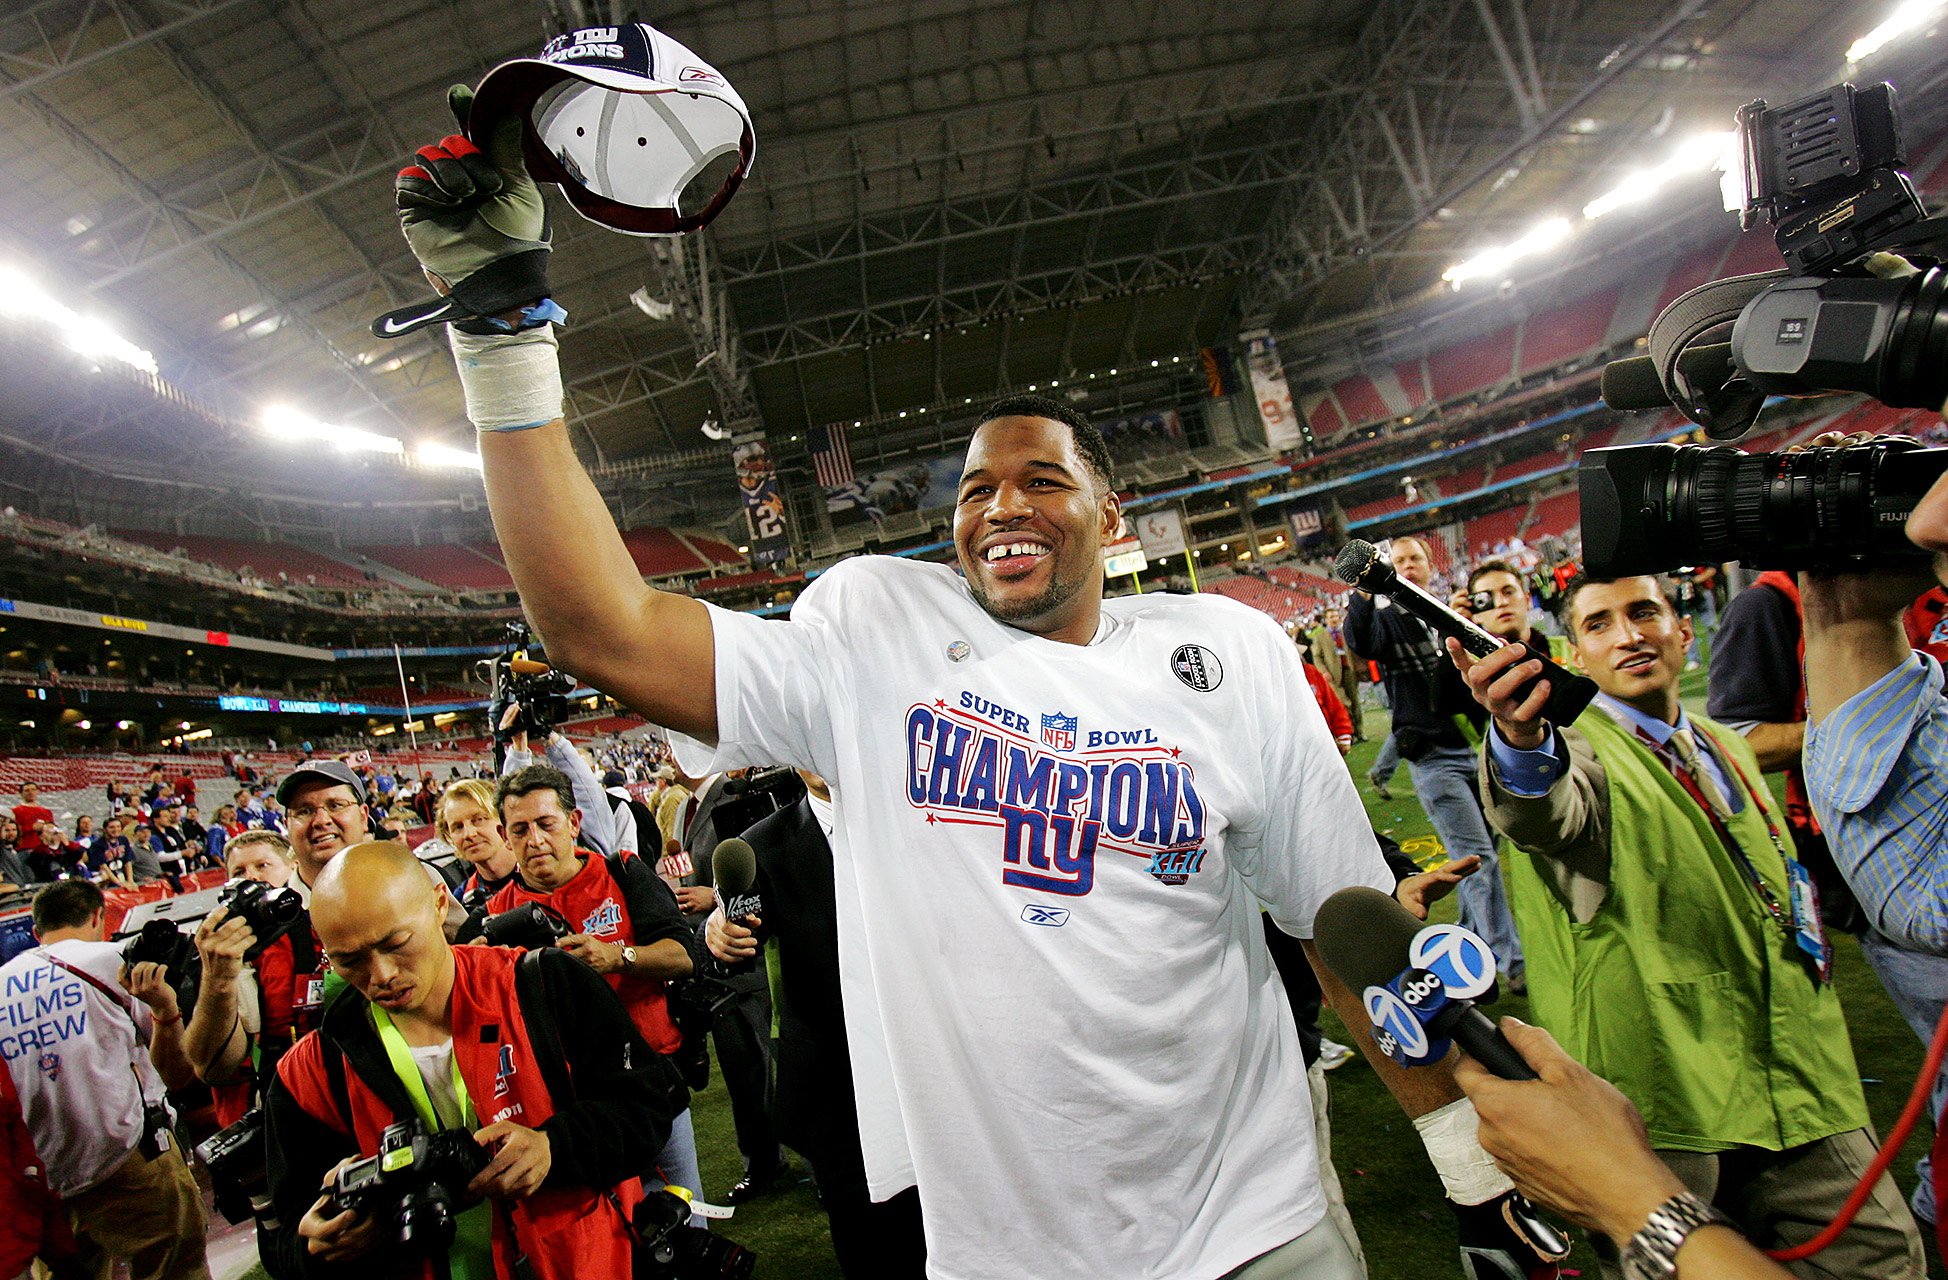 Michael Strahan walked out a winner: a 17-14 upset of the Patriots in Super Bowl XLII was his final game.